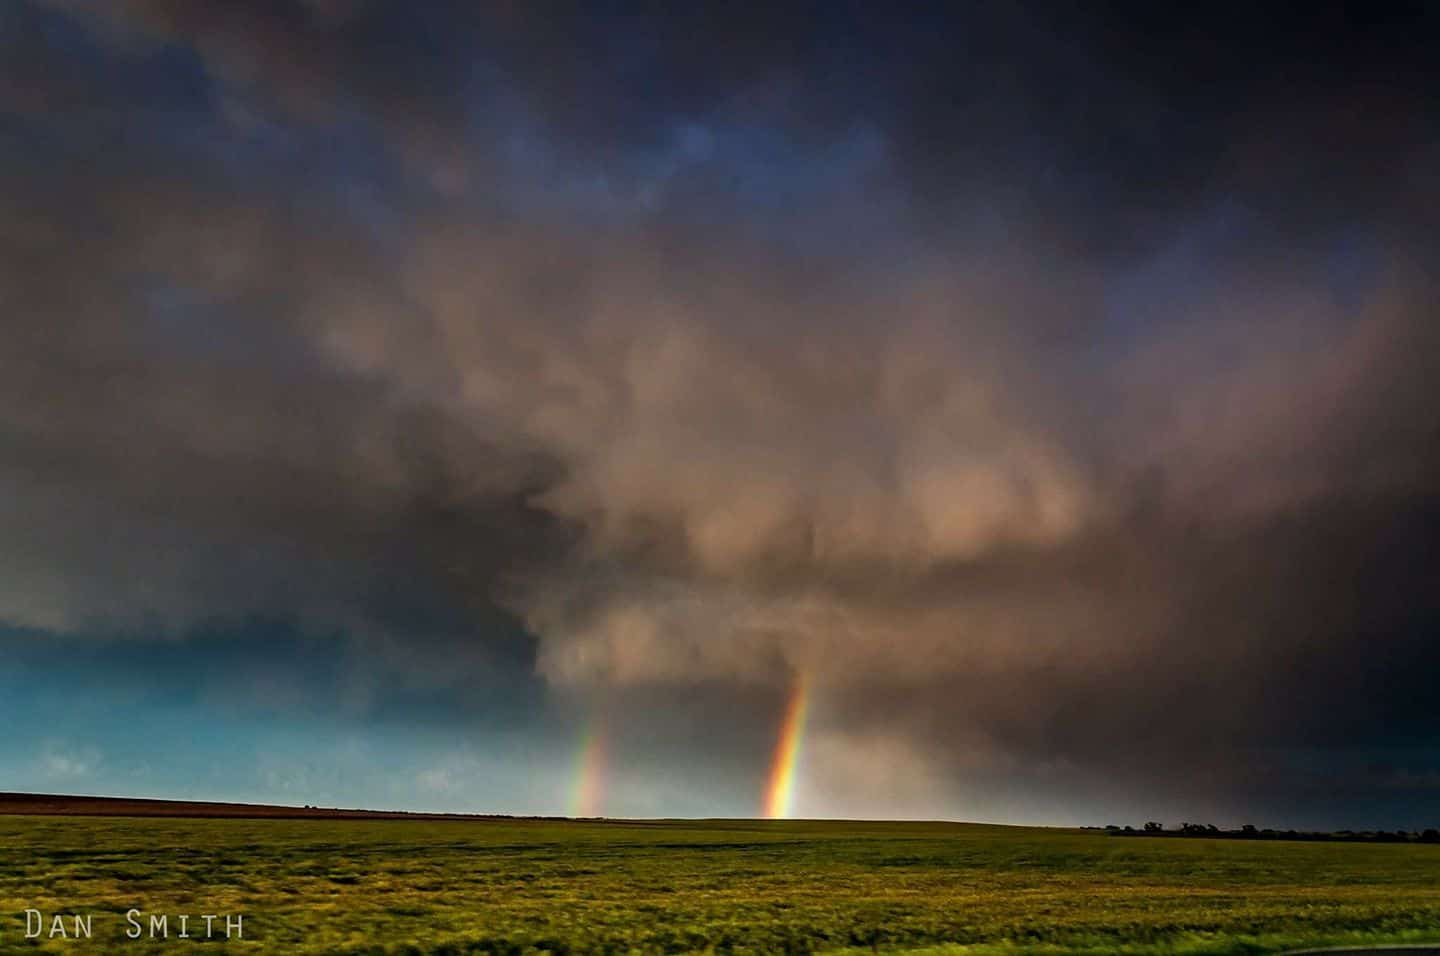 On the way home from the Dodge city tornado madness of 5/24/16.